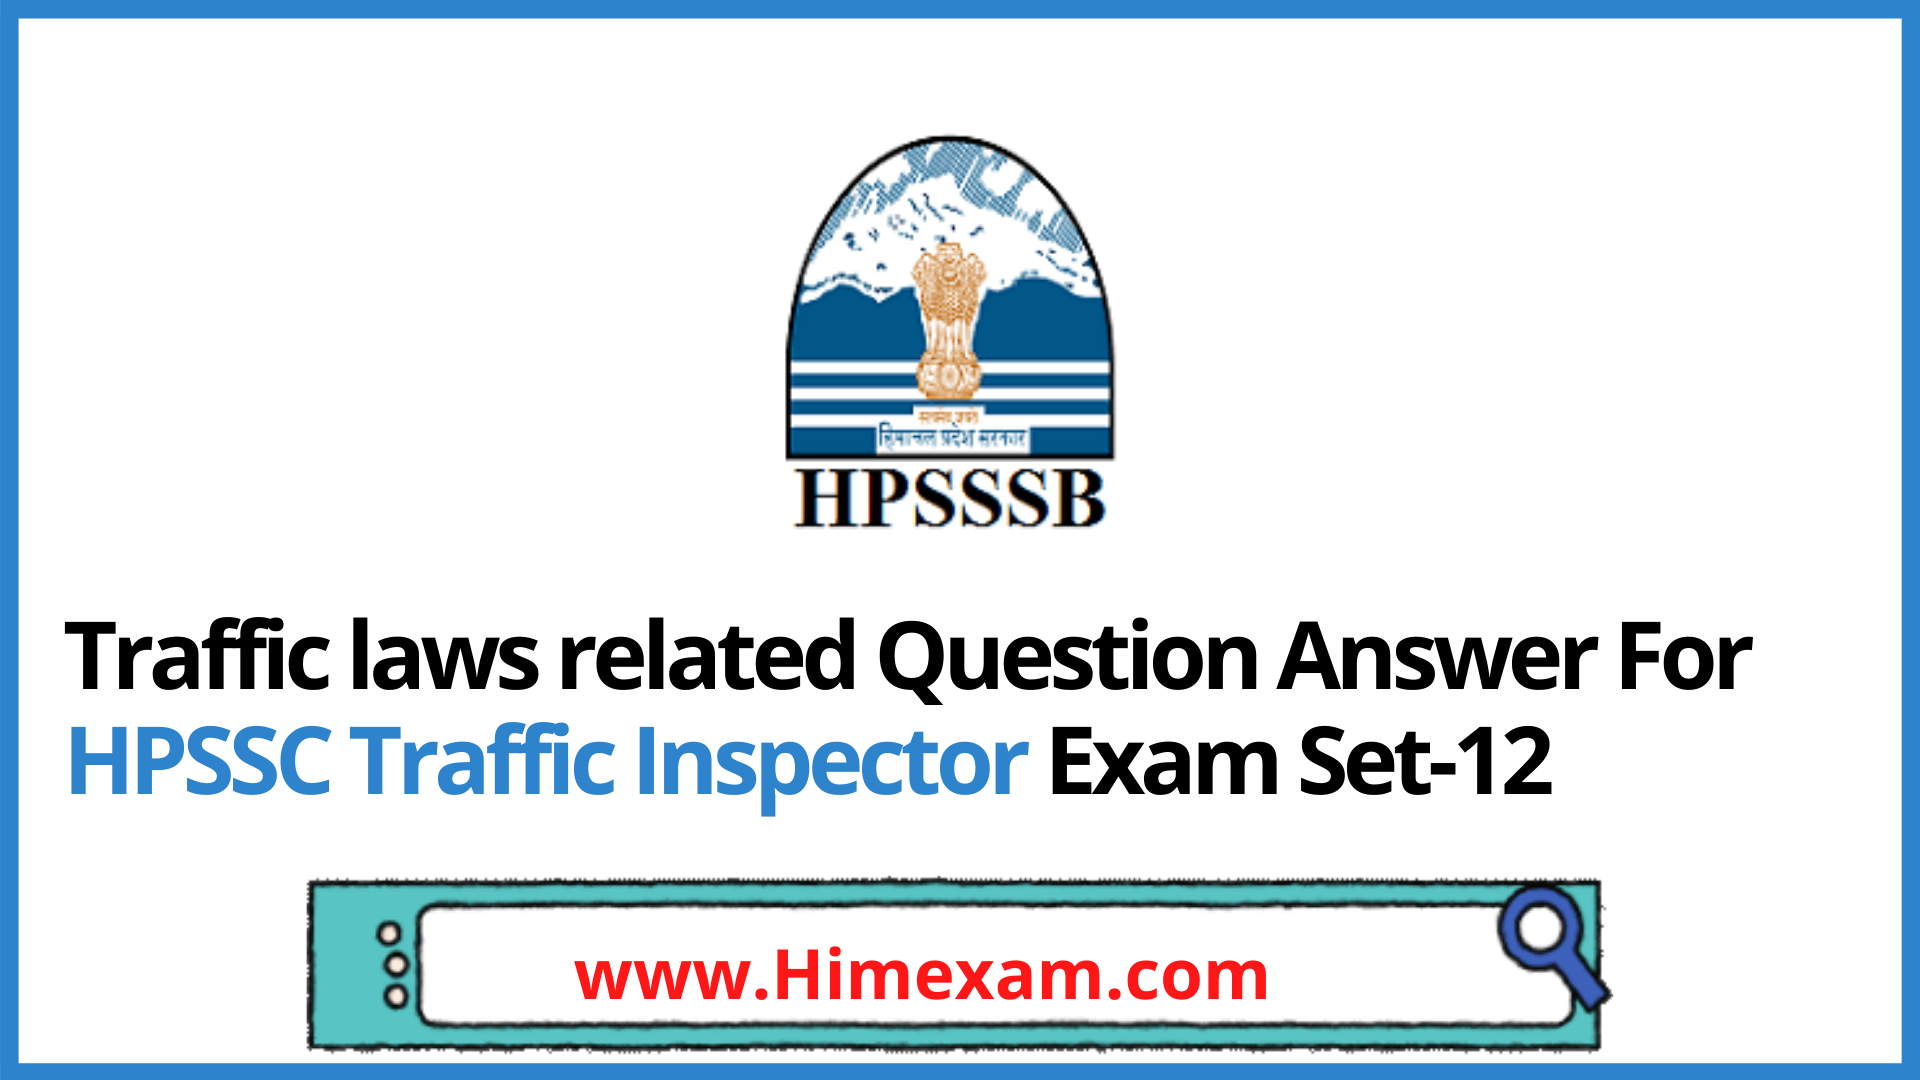 Traffic laws related Question Answer For HPSSC Traffic Inspector Exam Set-12